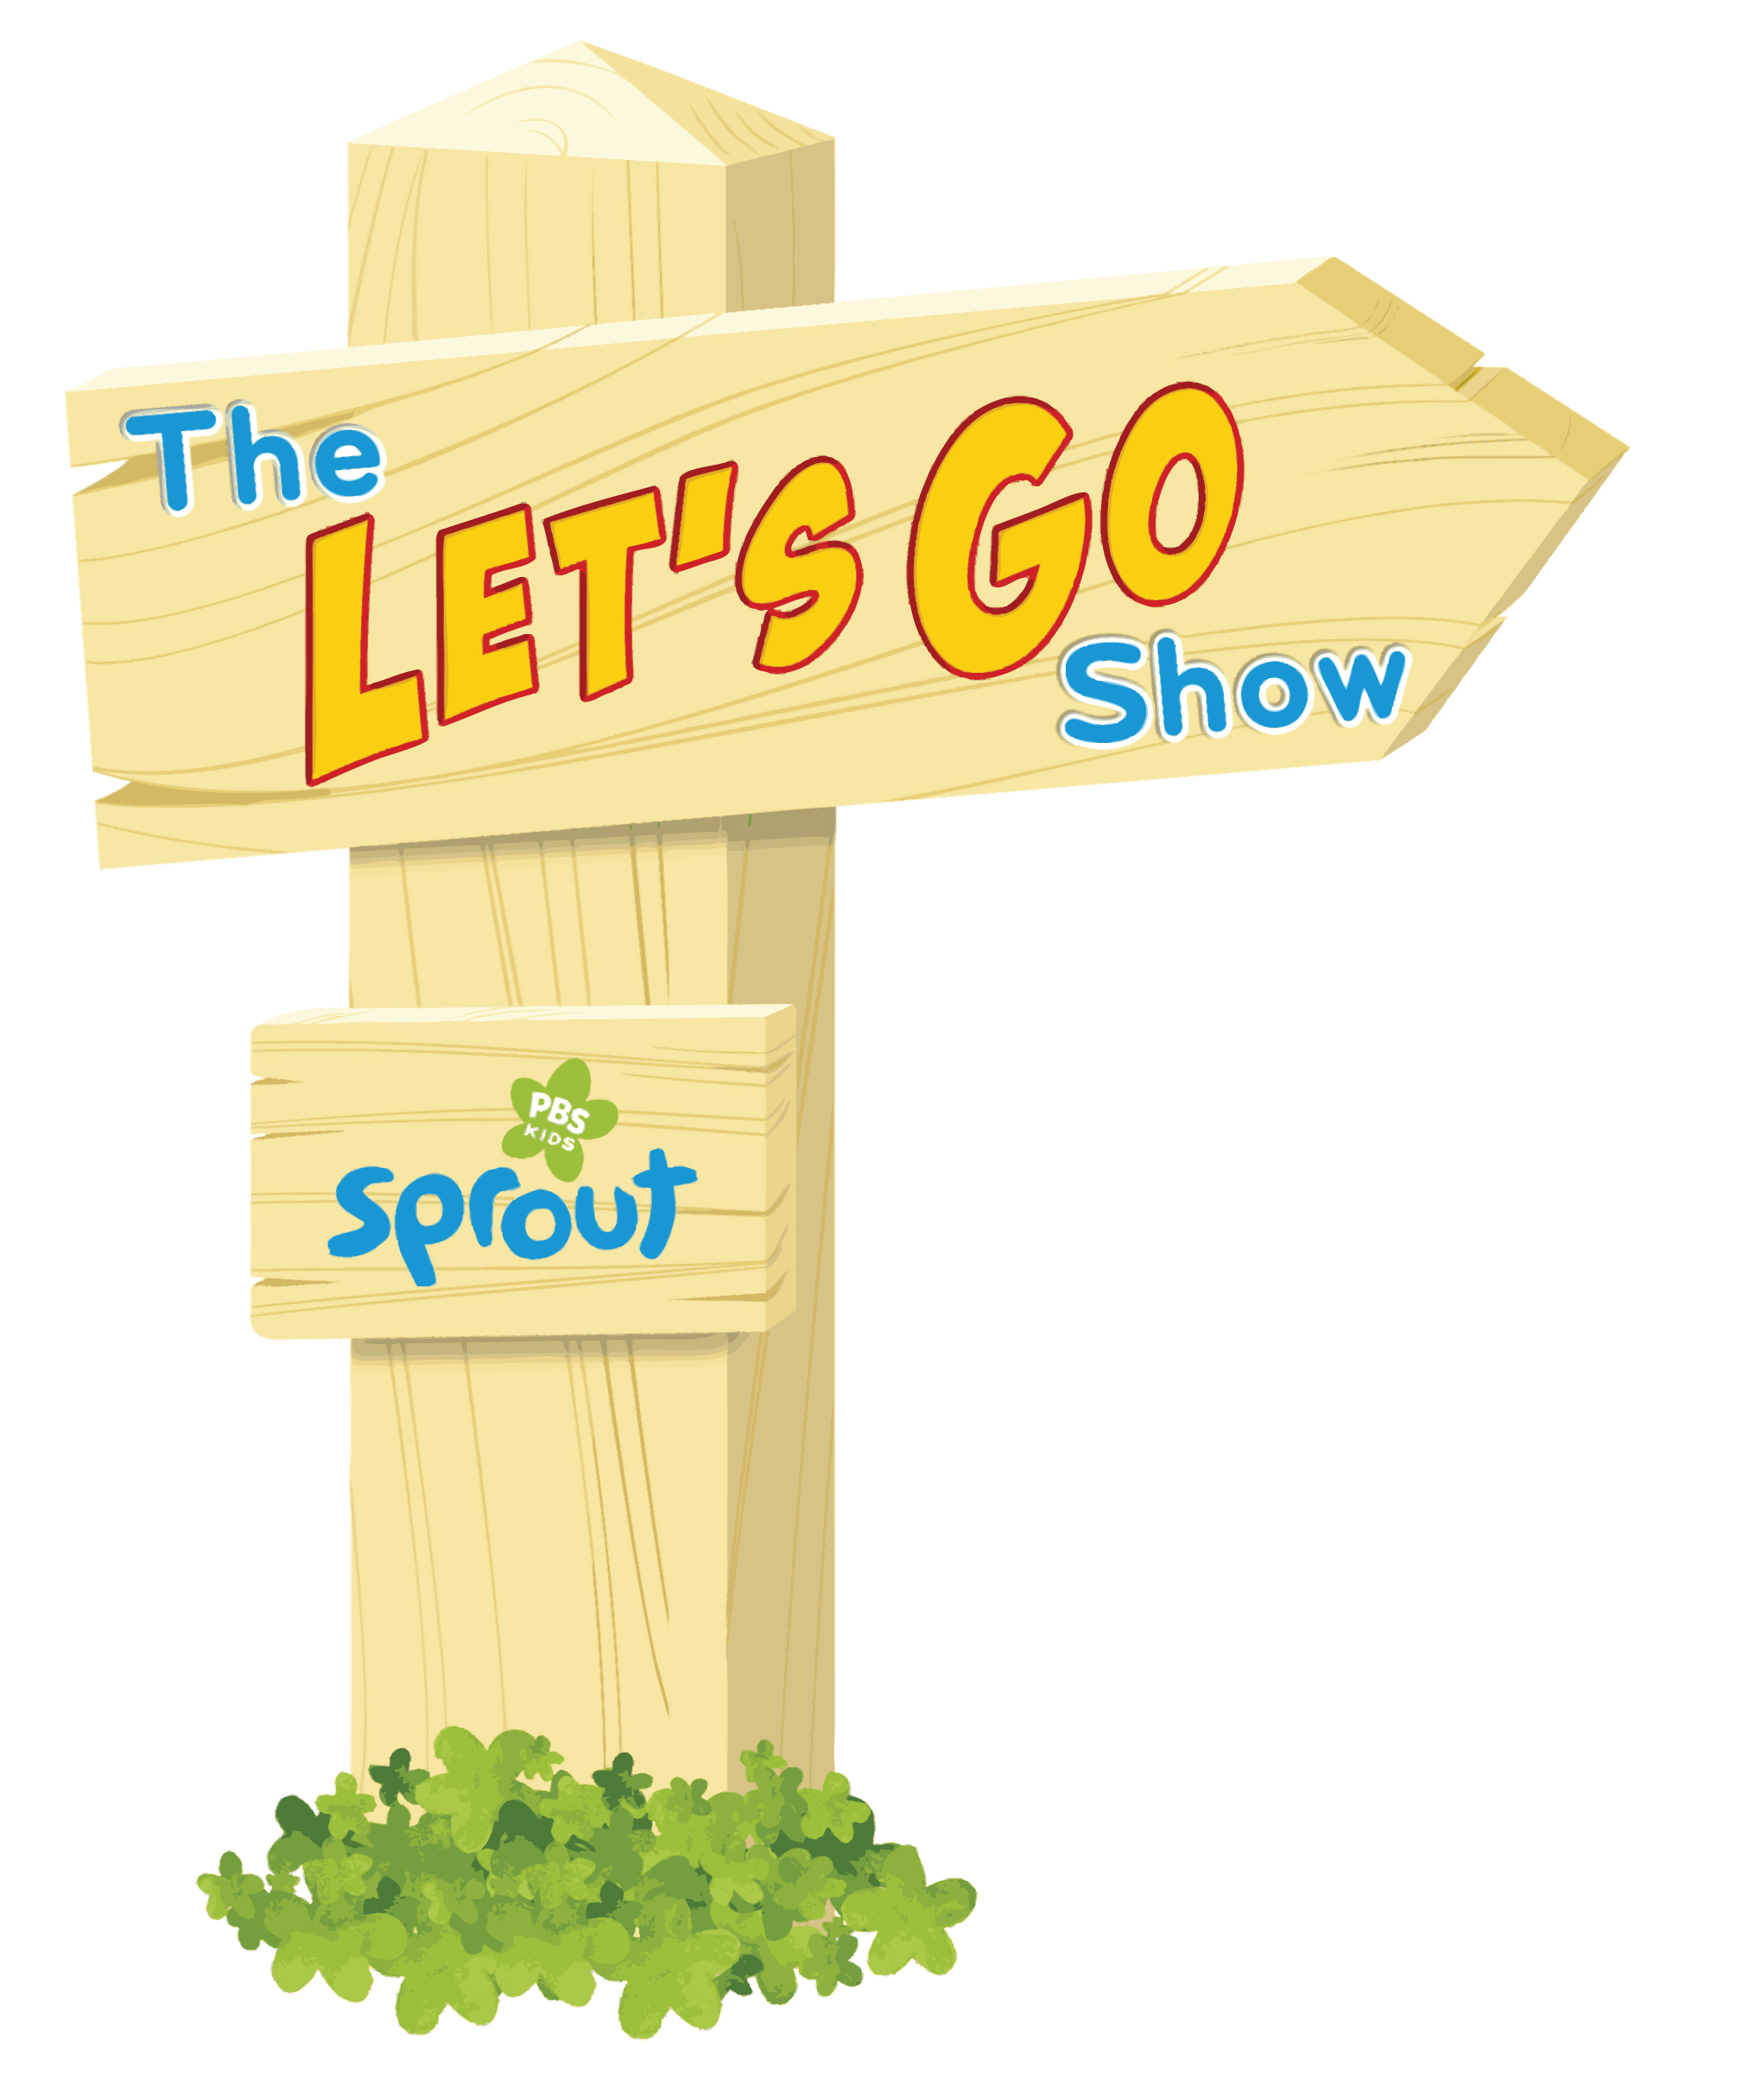 The Let's Go Show